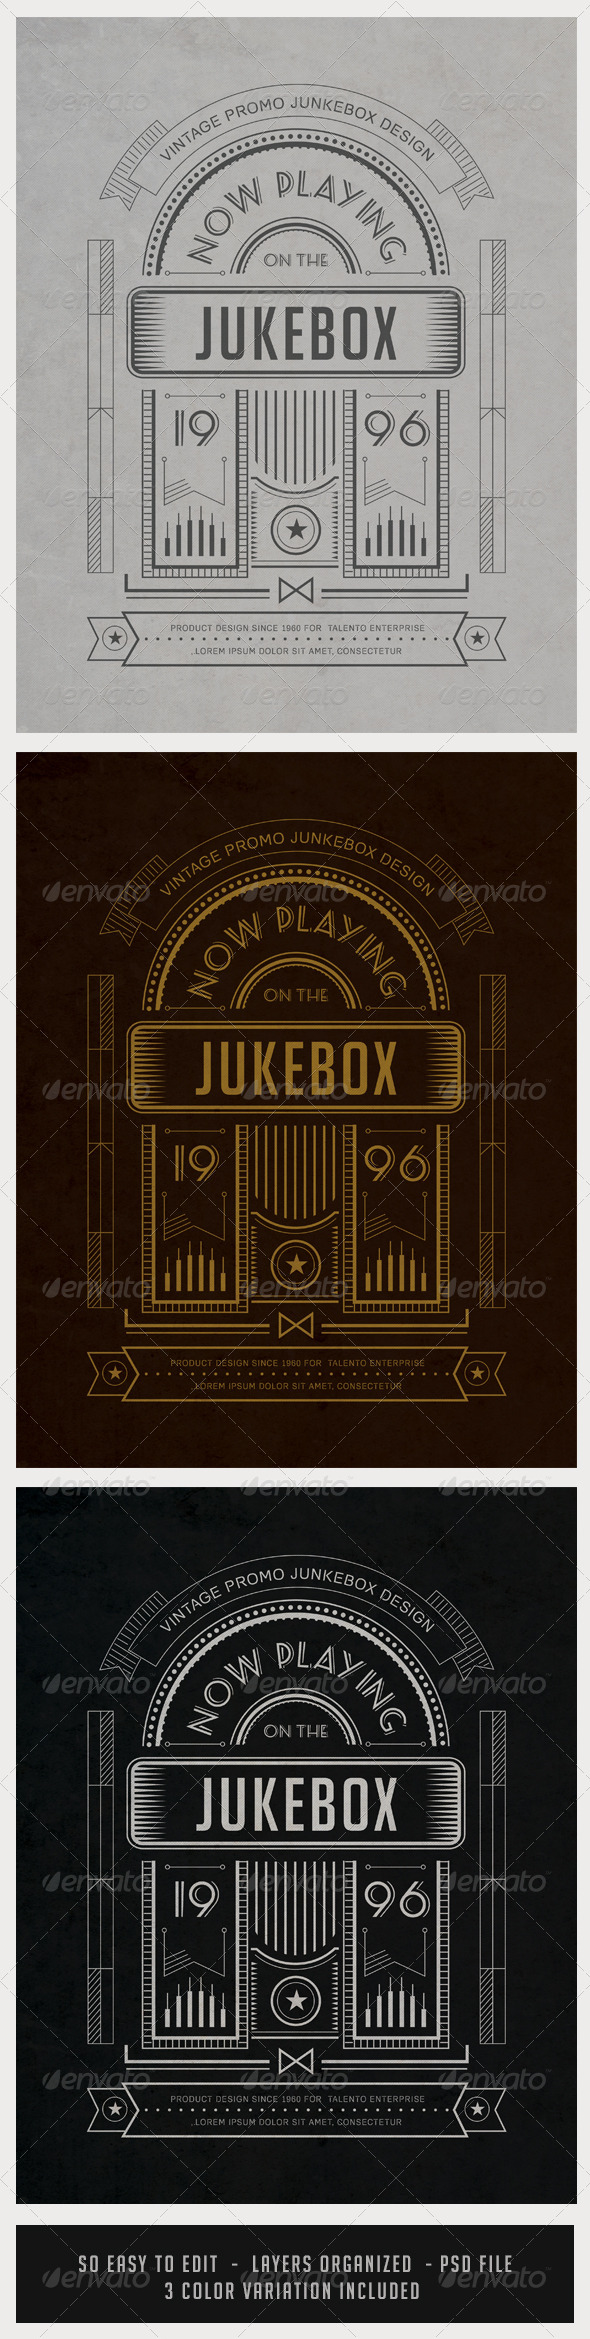 Vintage Junkebox Poster with Shape Layers - Retro/Vintage Business Cards